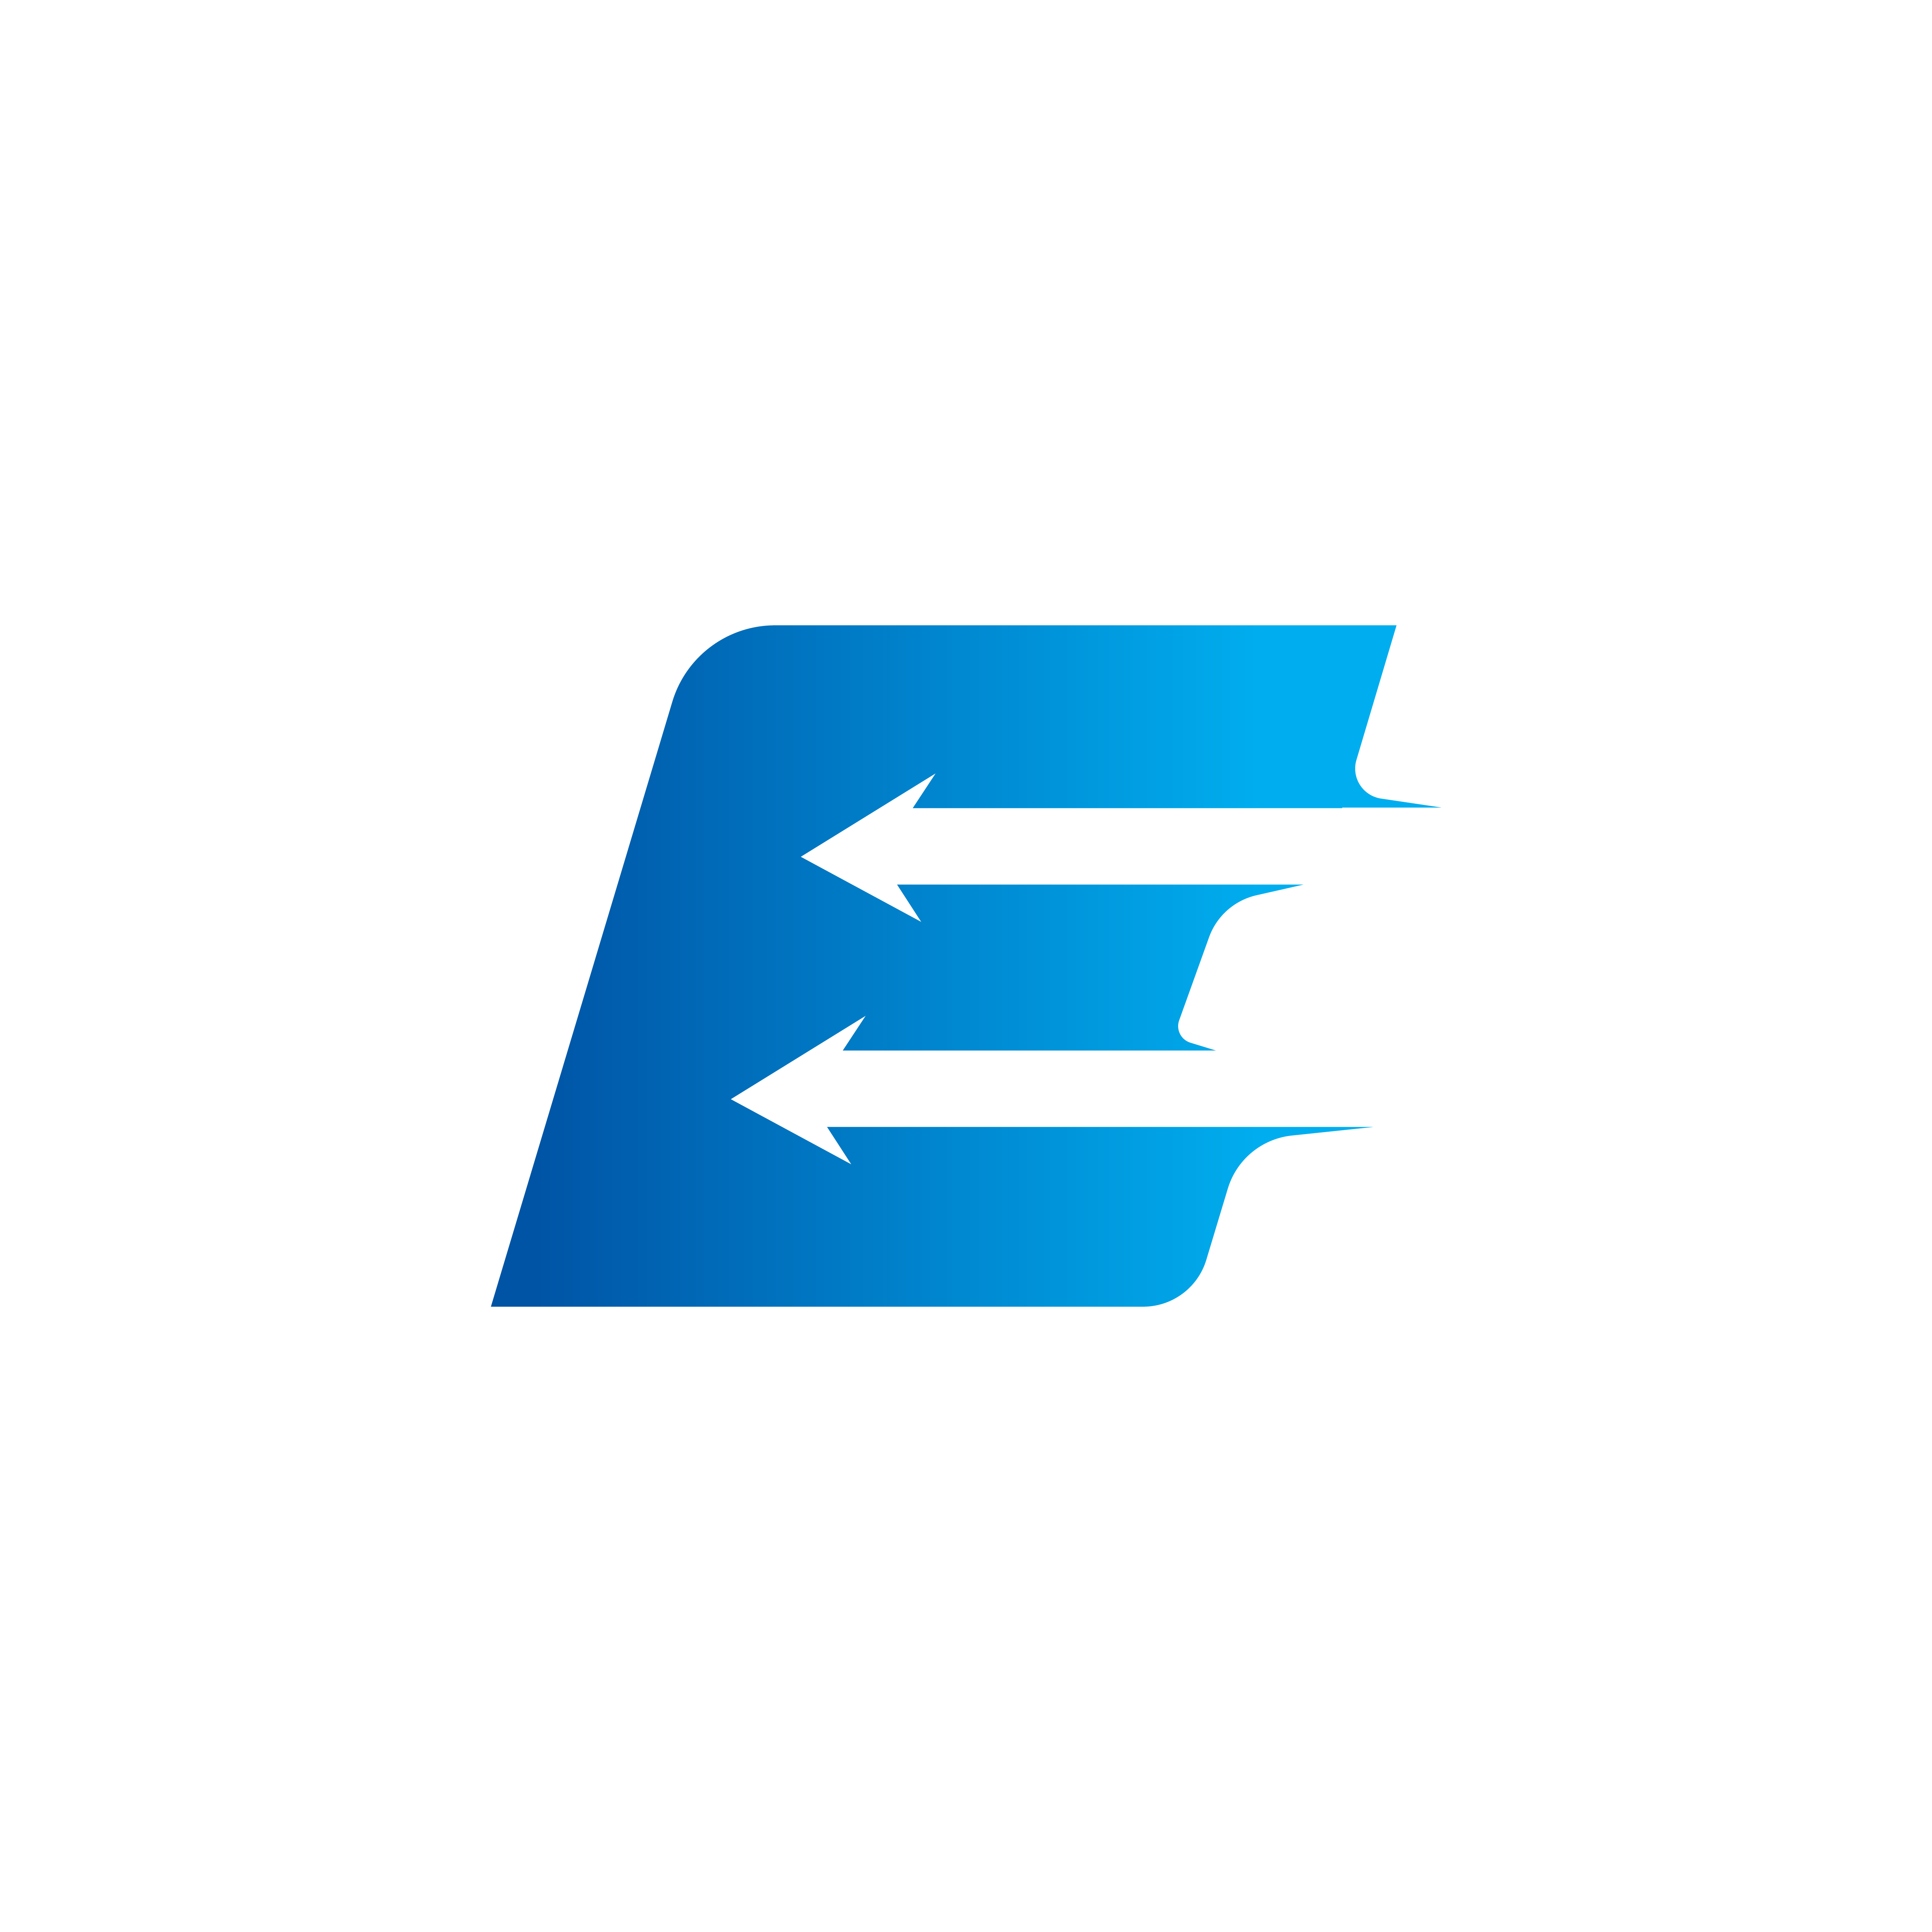 letter E with Arrow logo Design Template - Download Free ...